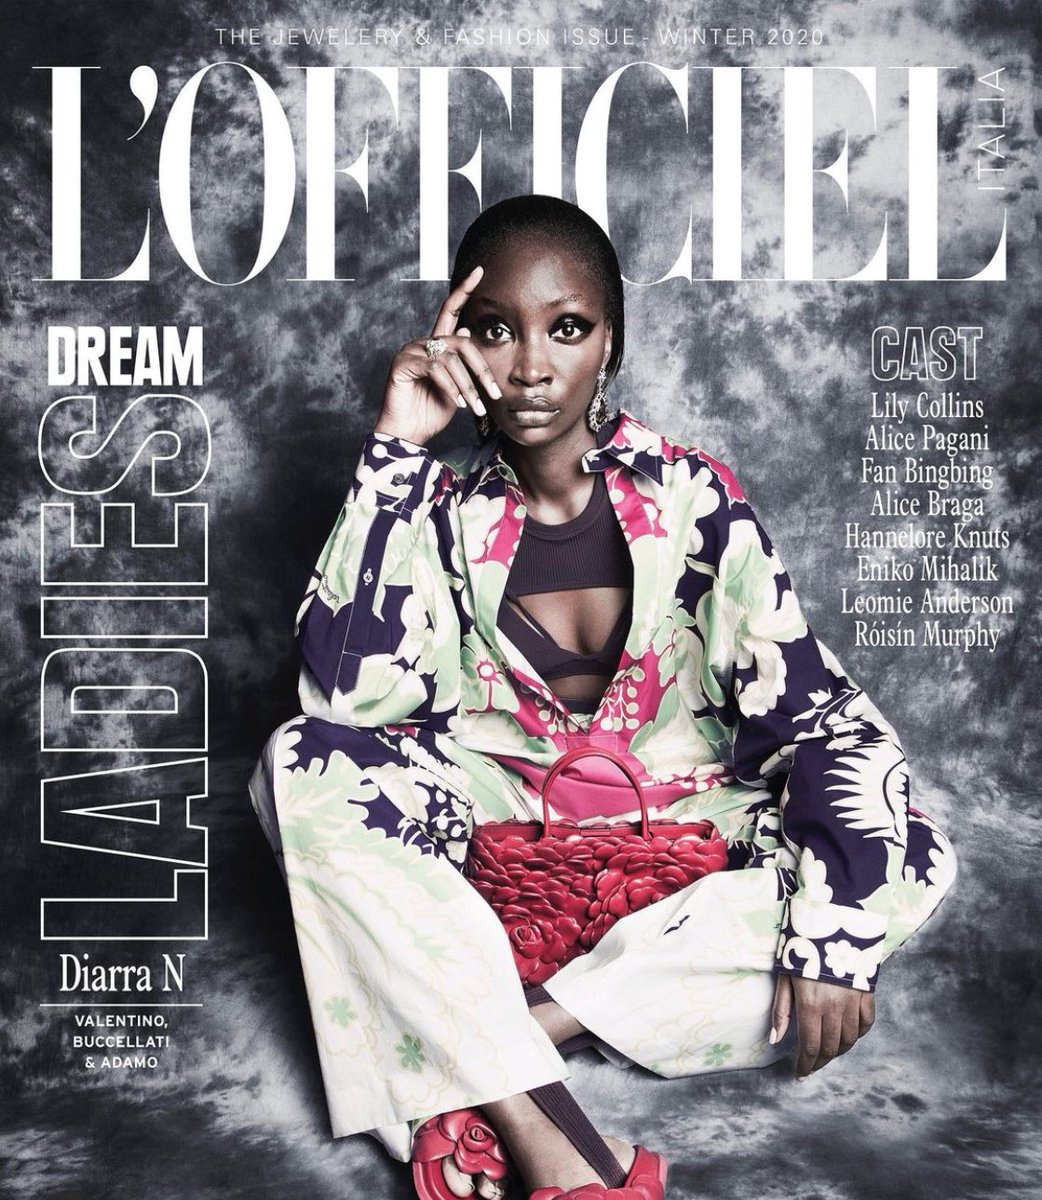 For the Jewelry and Fashion Issue of @LOfficielItalia, #Diarrandiaye was photographed by #AlbertoTandoiin a floral printed look from #ValentinoDiary, along with an #AtelierBag Valentino Garavani 03 Rose Edition and Valentino Garavani Atelier Shoes.  #ValentinoNewsstand